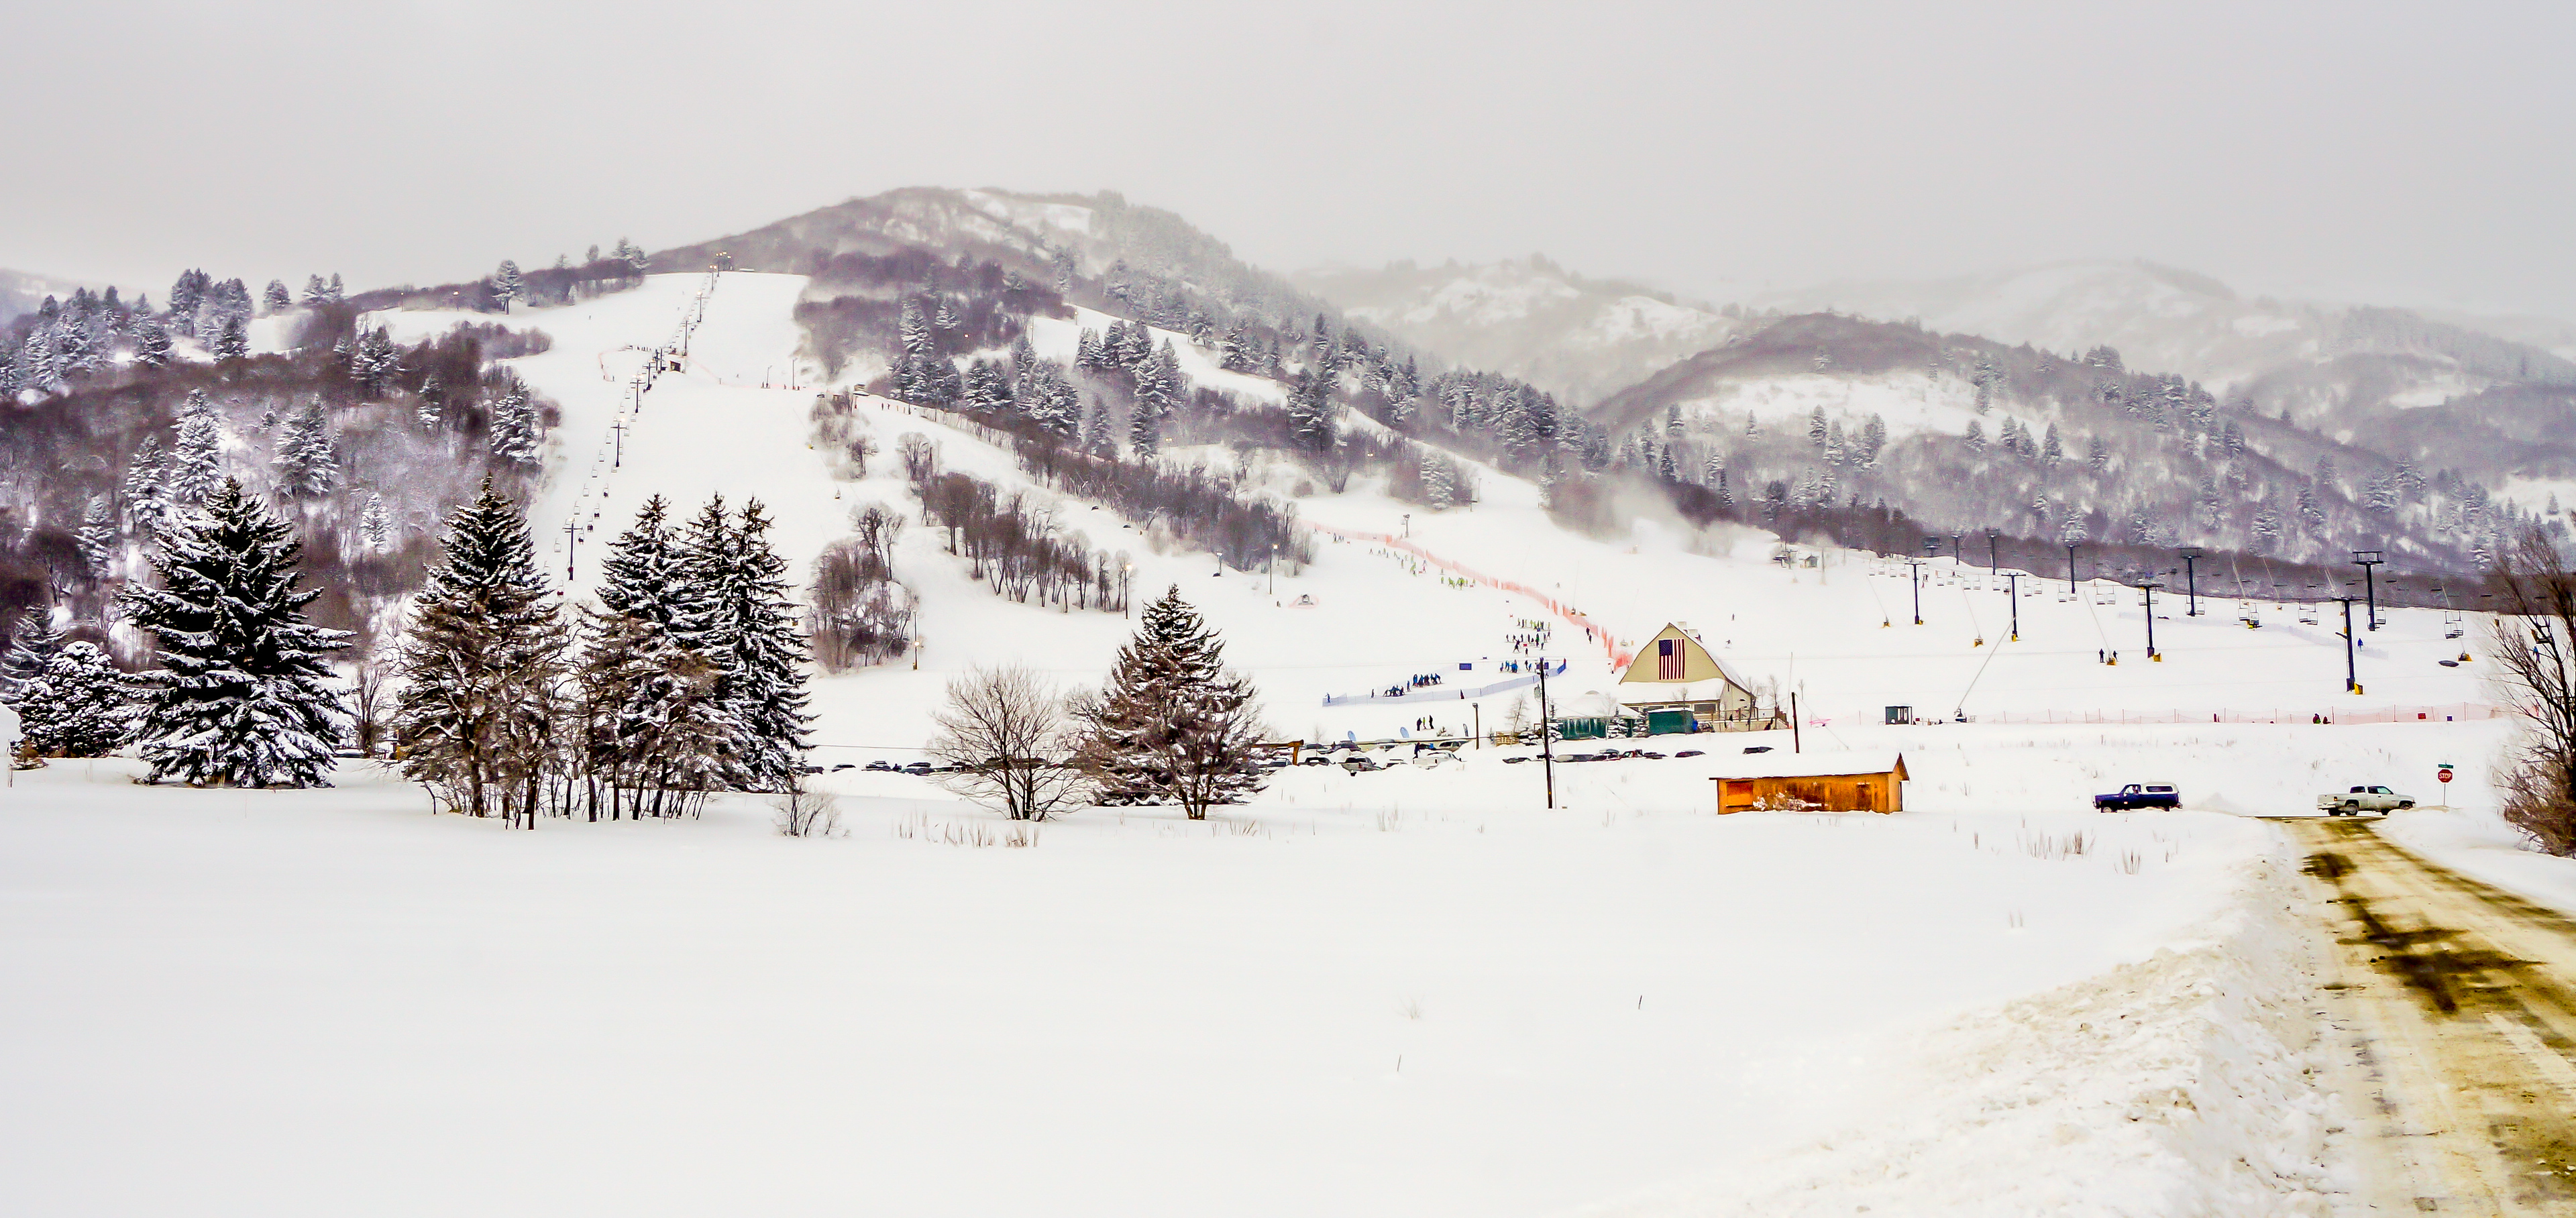 Nordic Valley Ski Resort